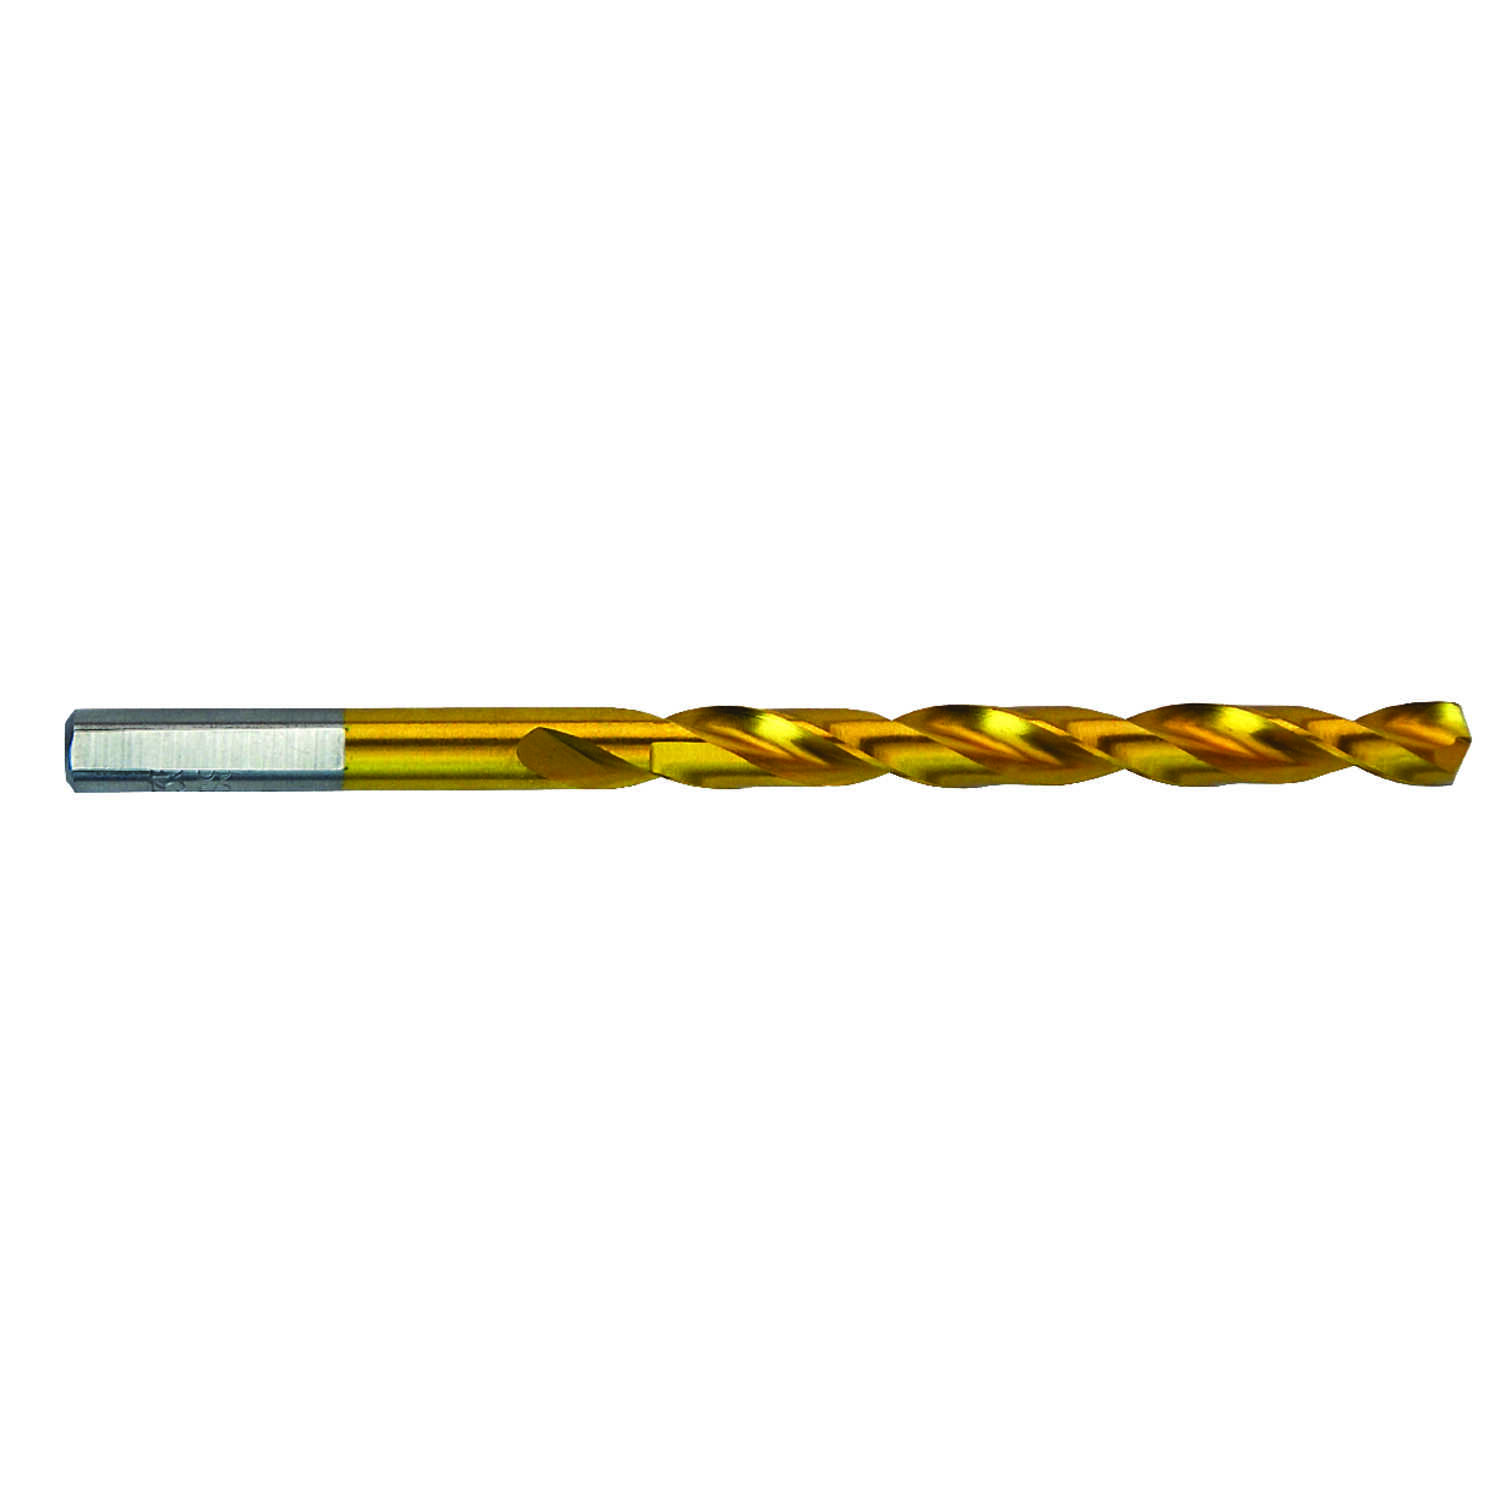 Milwaukee  THUNDERBOLT  1/16 in. Dia. x 1-7/8 in. L High Carbon Steel  Drill Bit  1 pc.